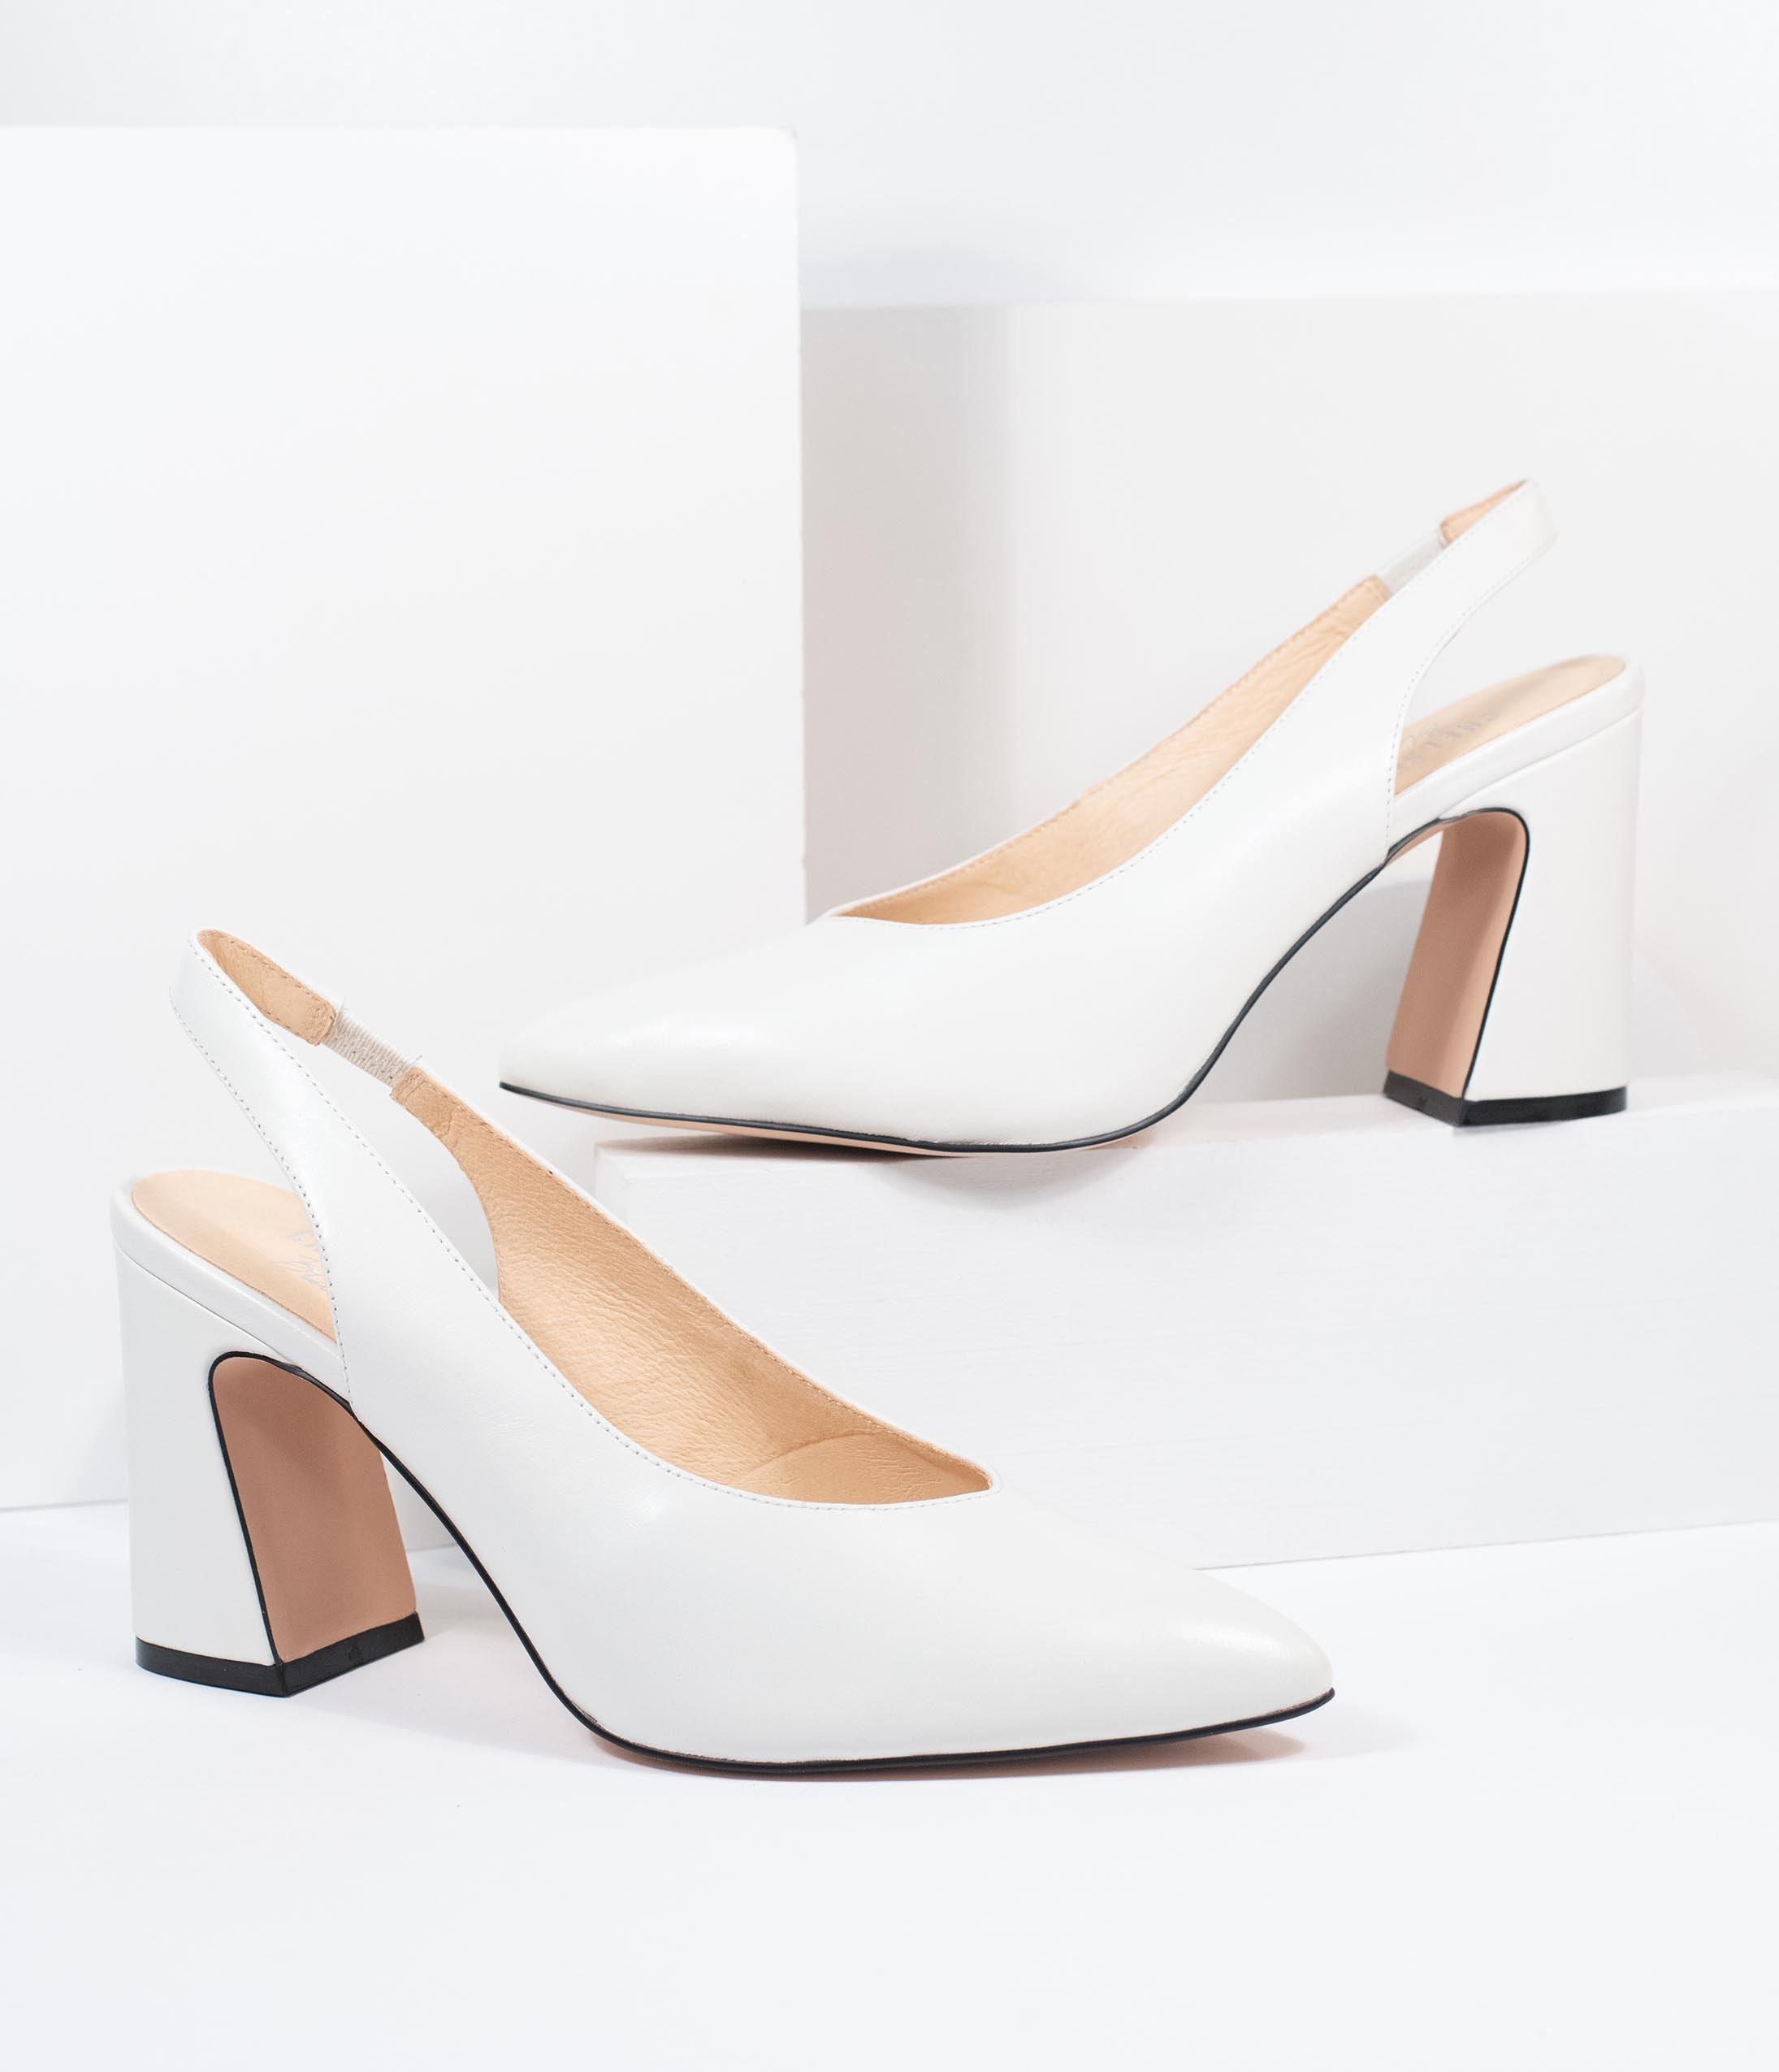 1980s Clothing, Fashion | 80s Style Clothes Chelsea Crew White Leather Slingback Kenzie Heels $96.00 AT vintagedancer.com